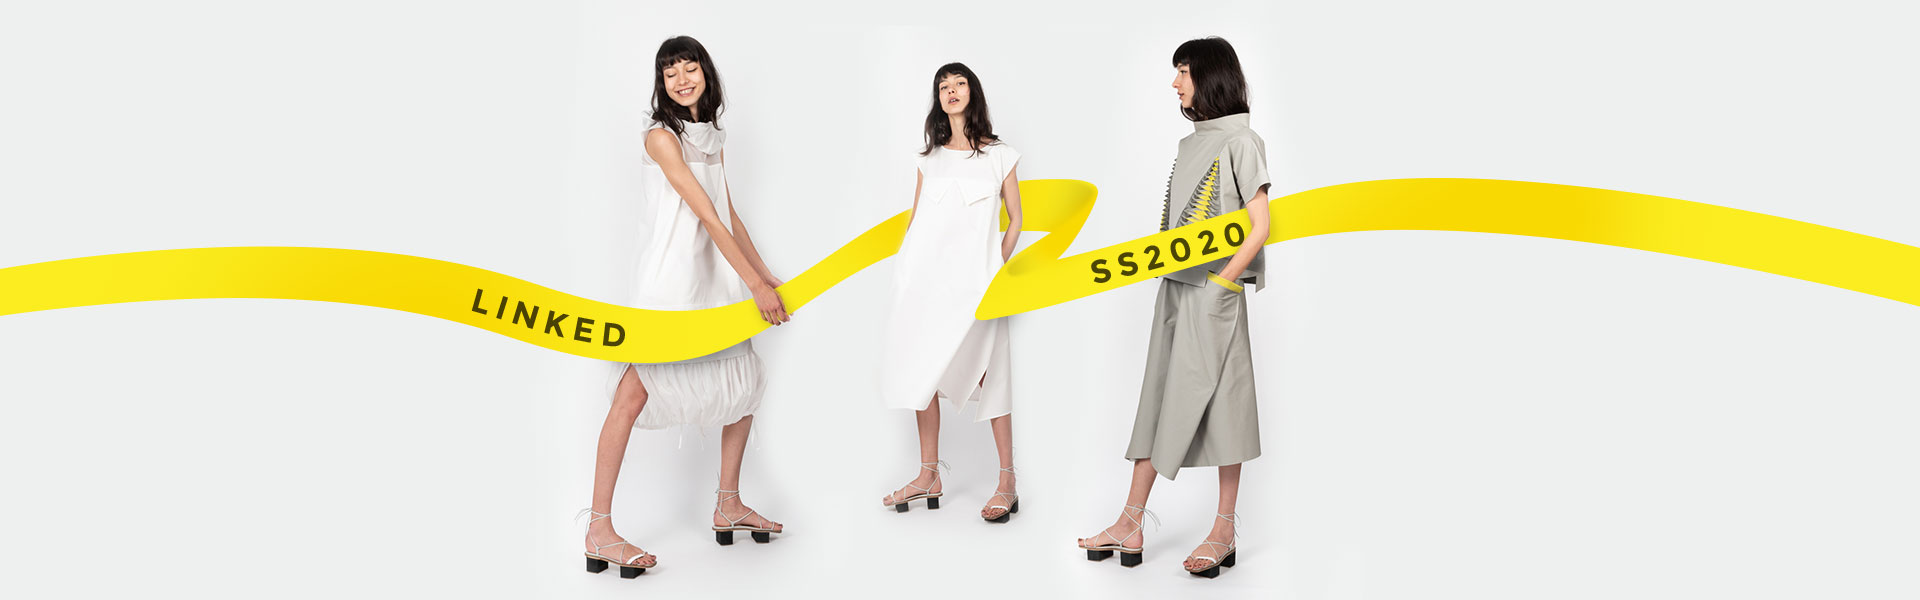 banner-linked-ss2020